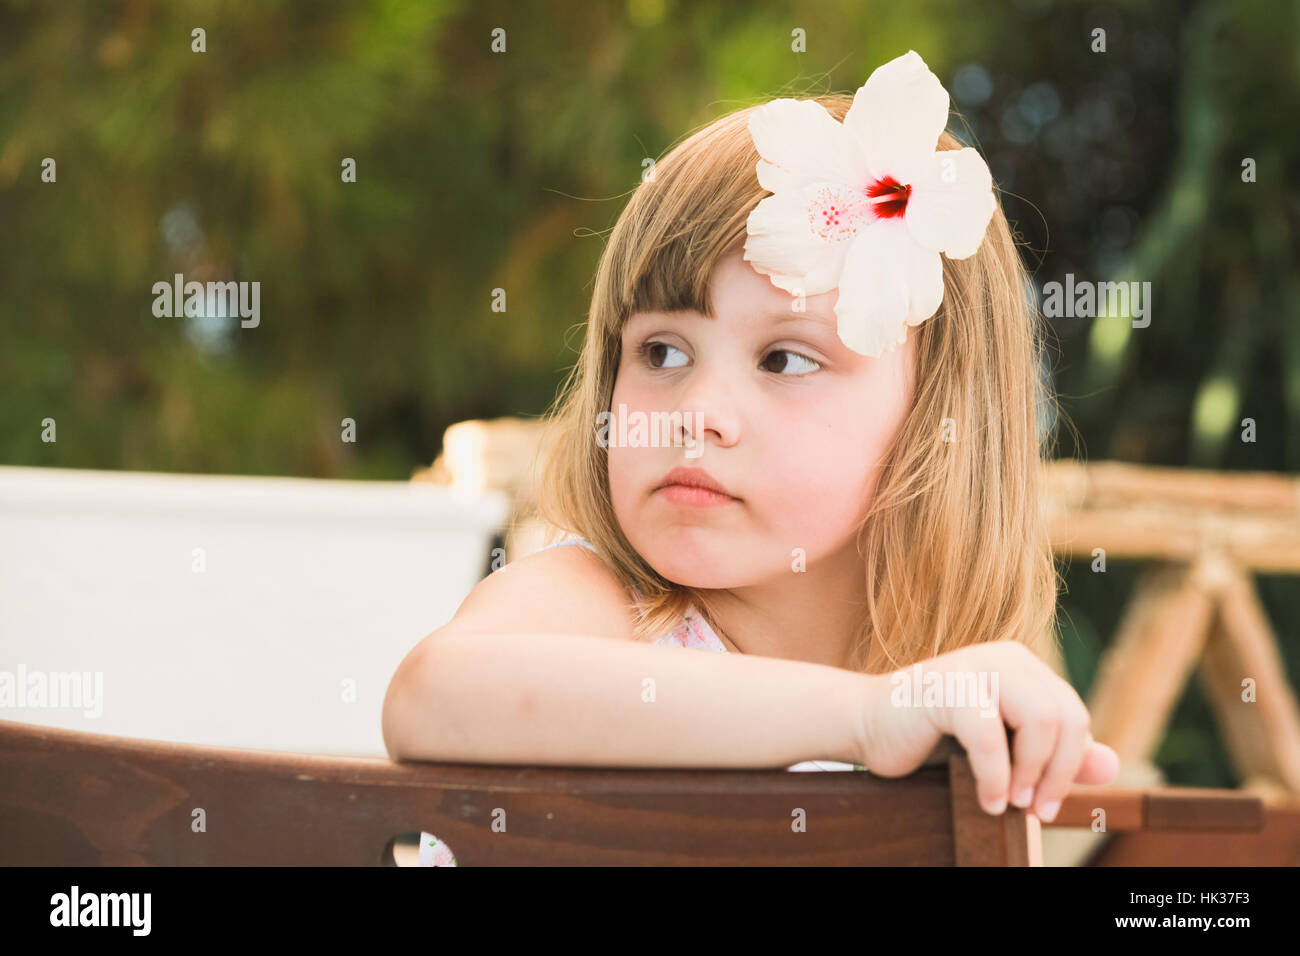 Thinking Cute Caucasian Little Girl With White Flower In Hair Stock